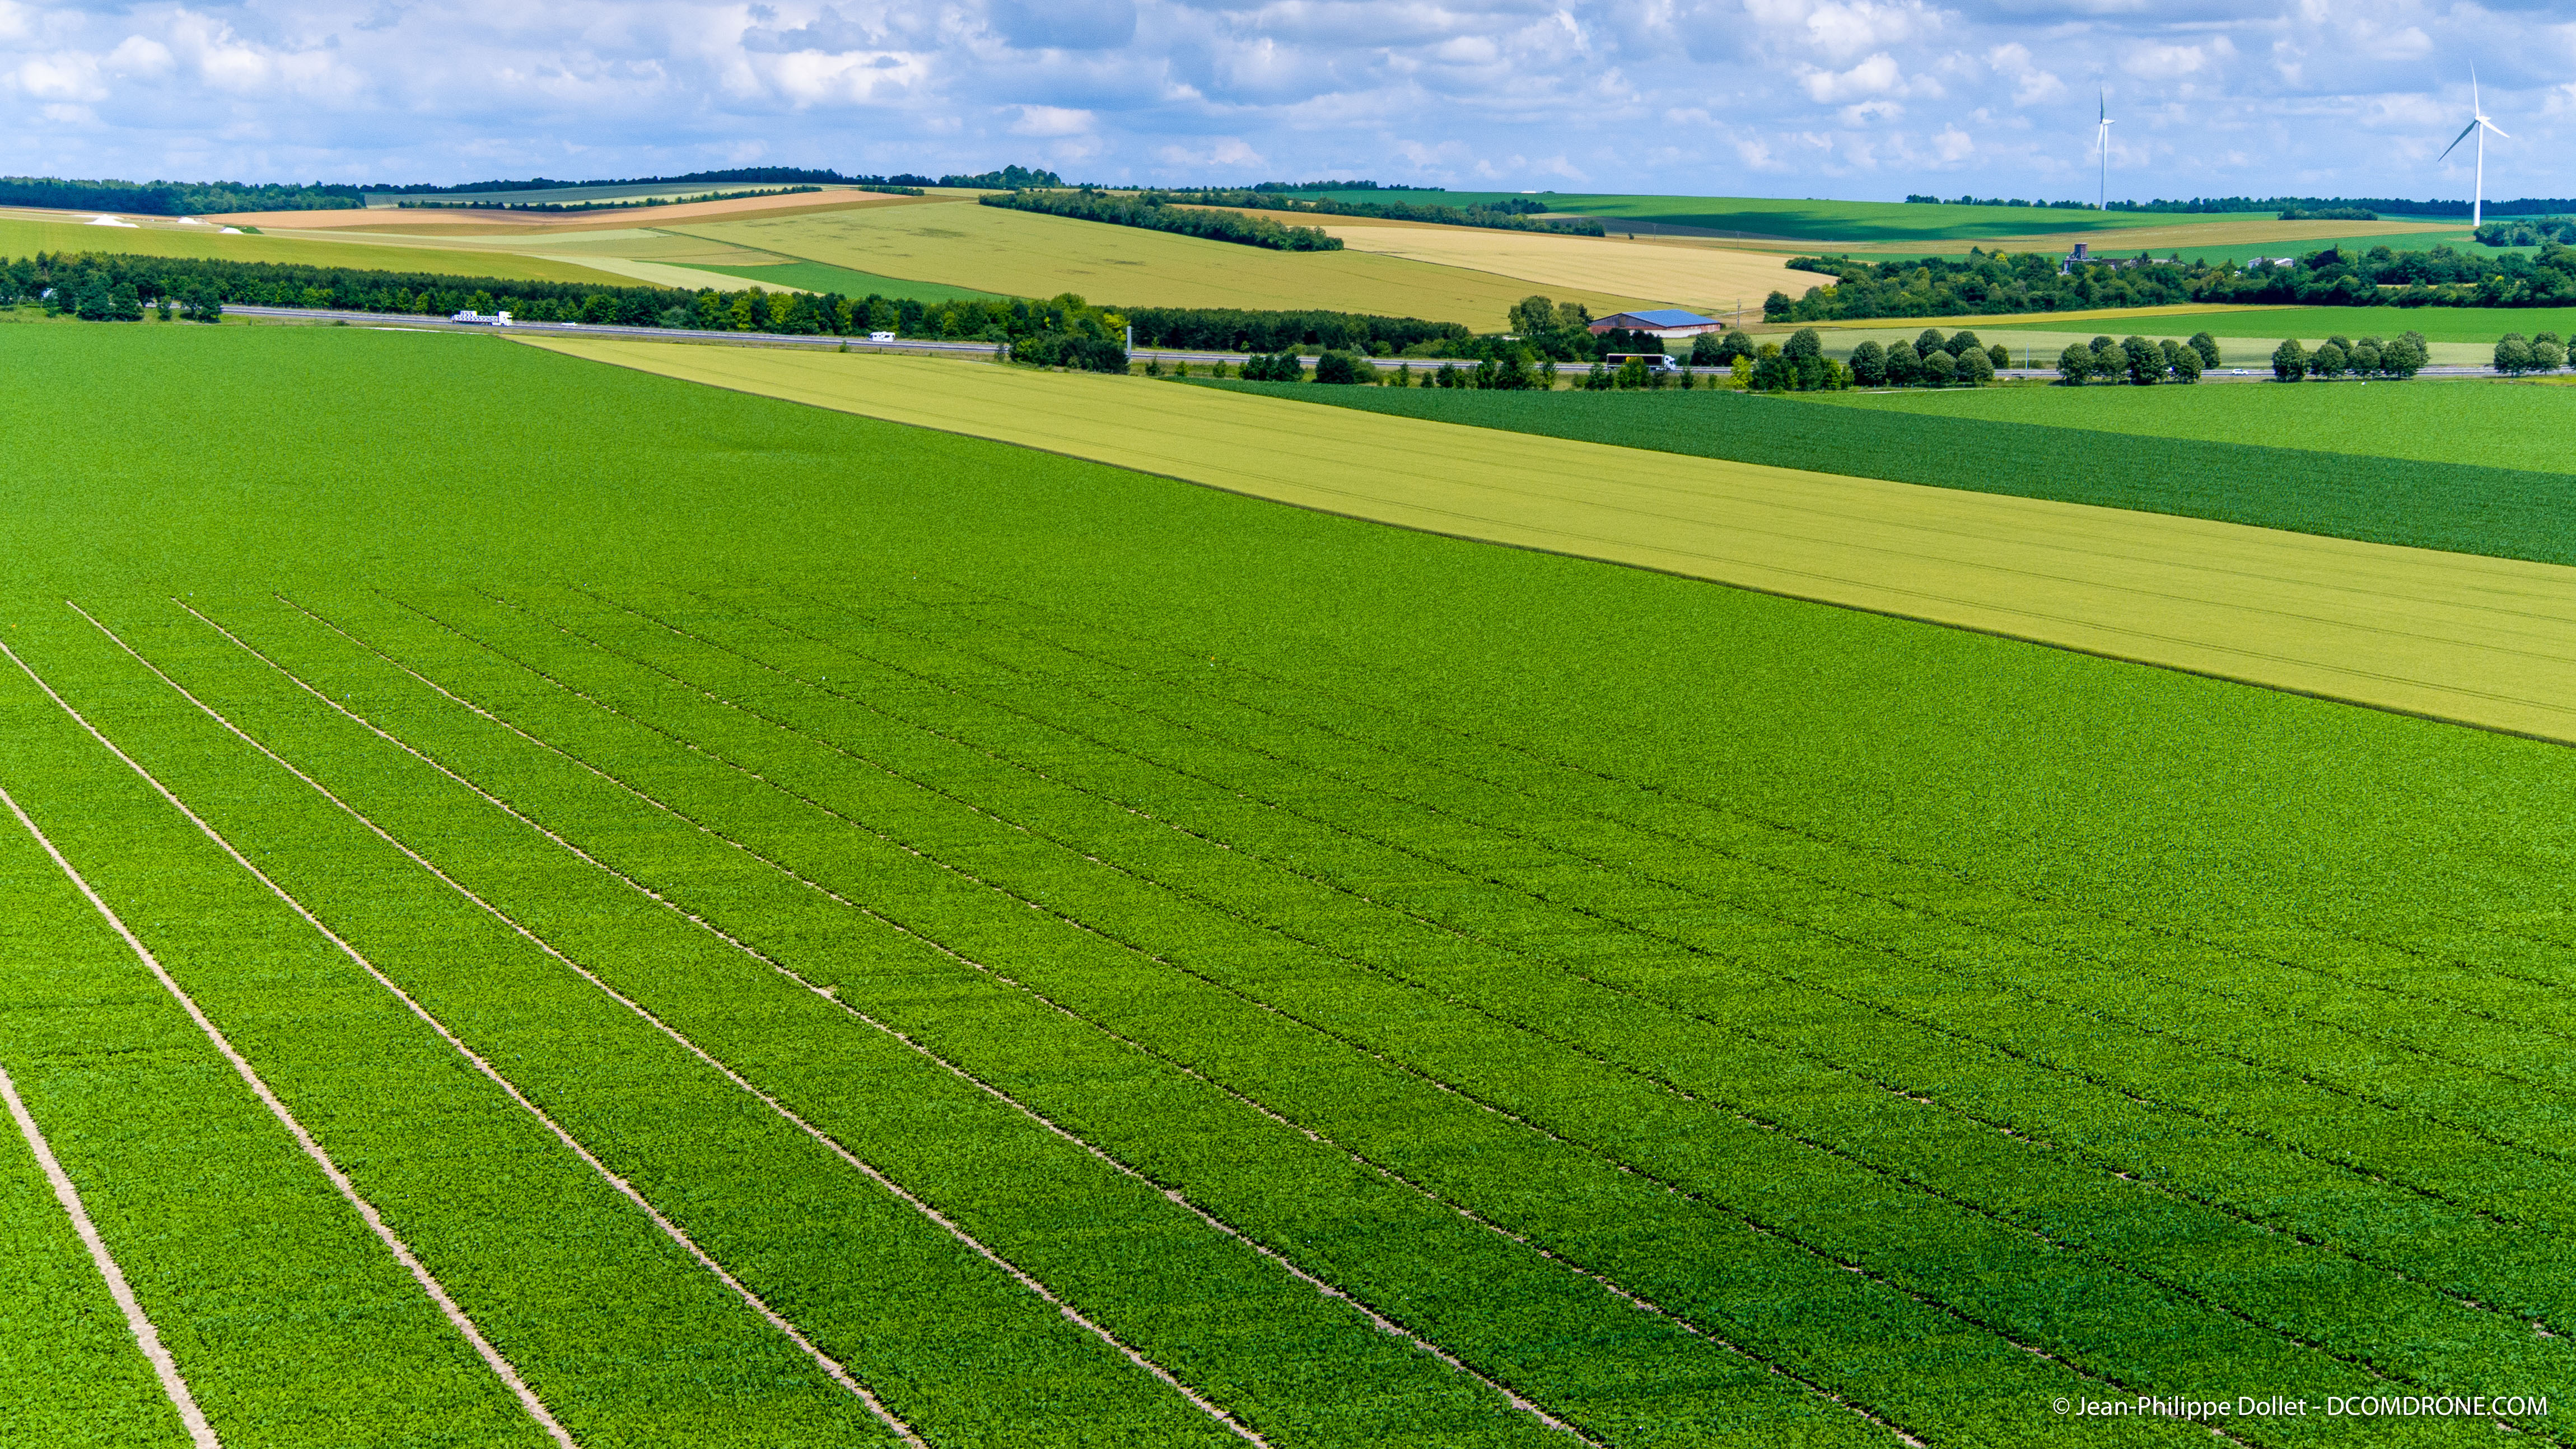 Precision farming. The drone at the service of high speed phenotyping.